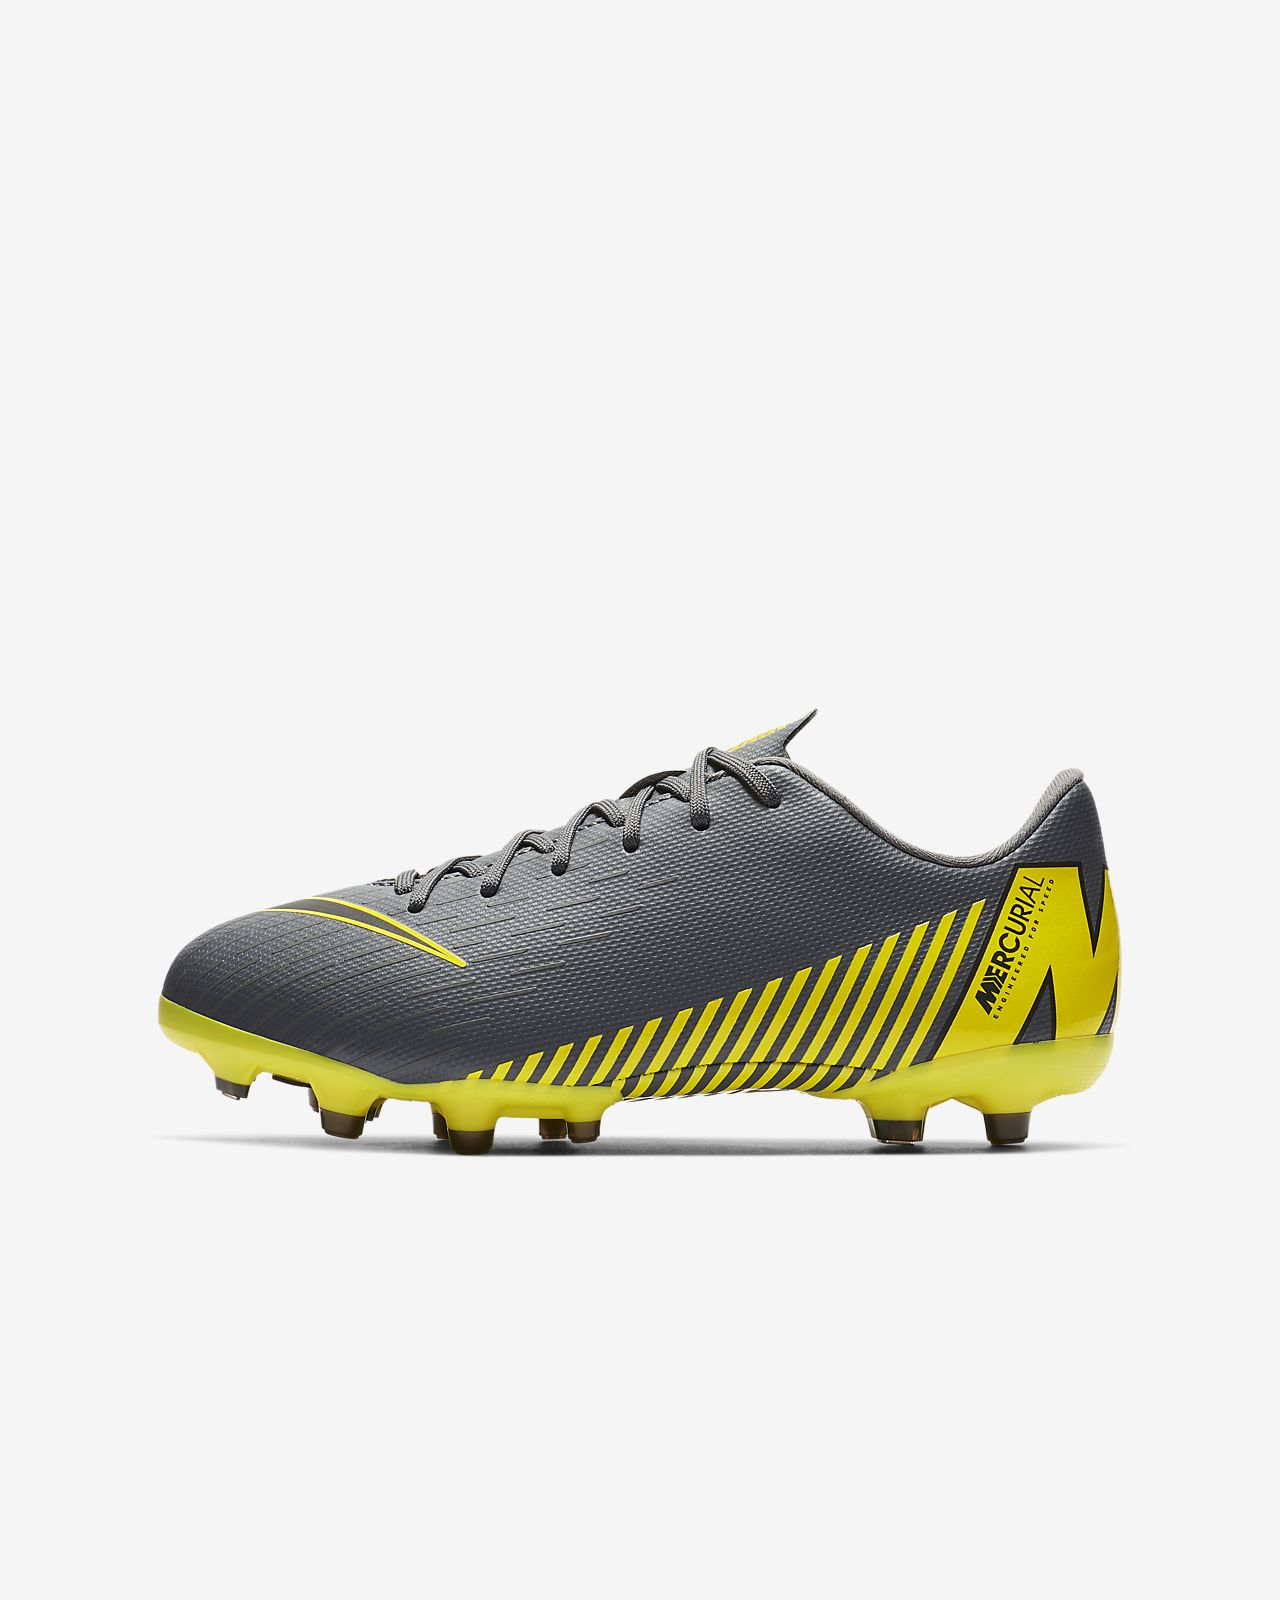 low priced dd0d9 bb739 ... Chaussure de football multi-terrains à crampons Nike Jr. Mercurial  Vapor XII Academy pour